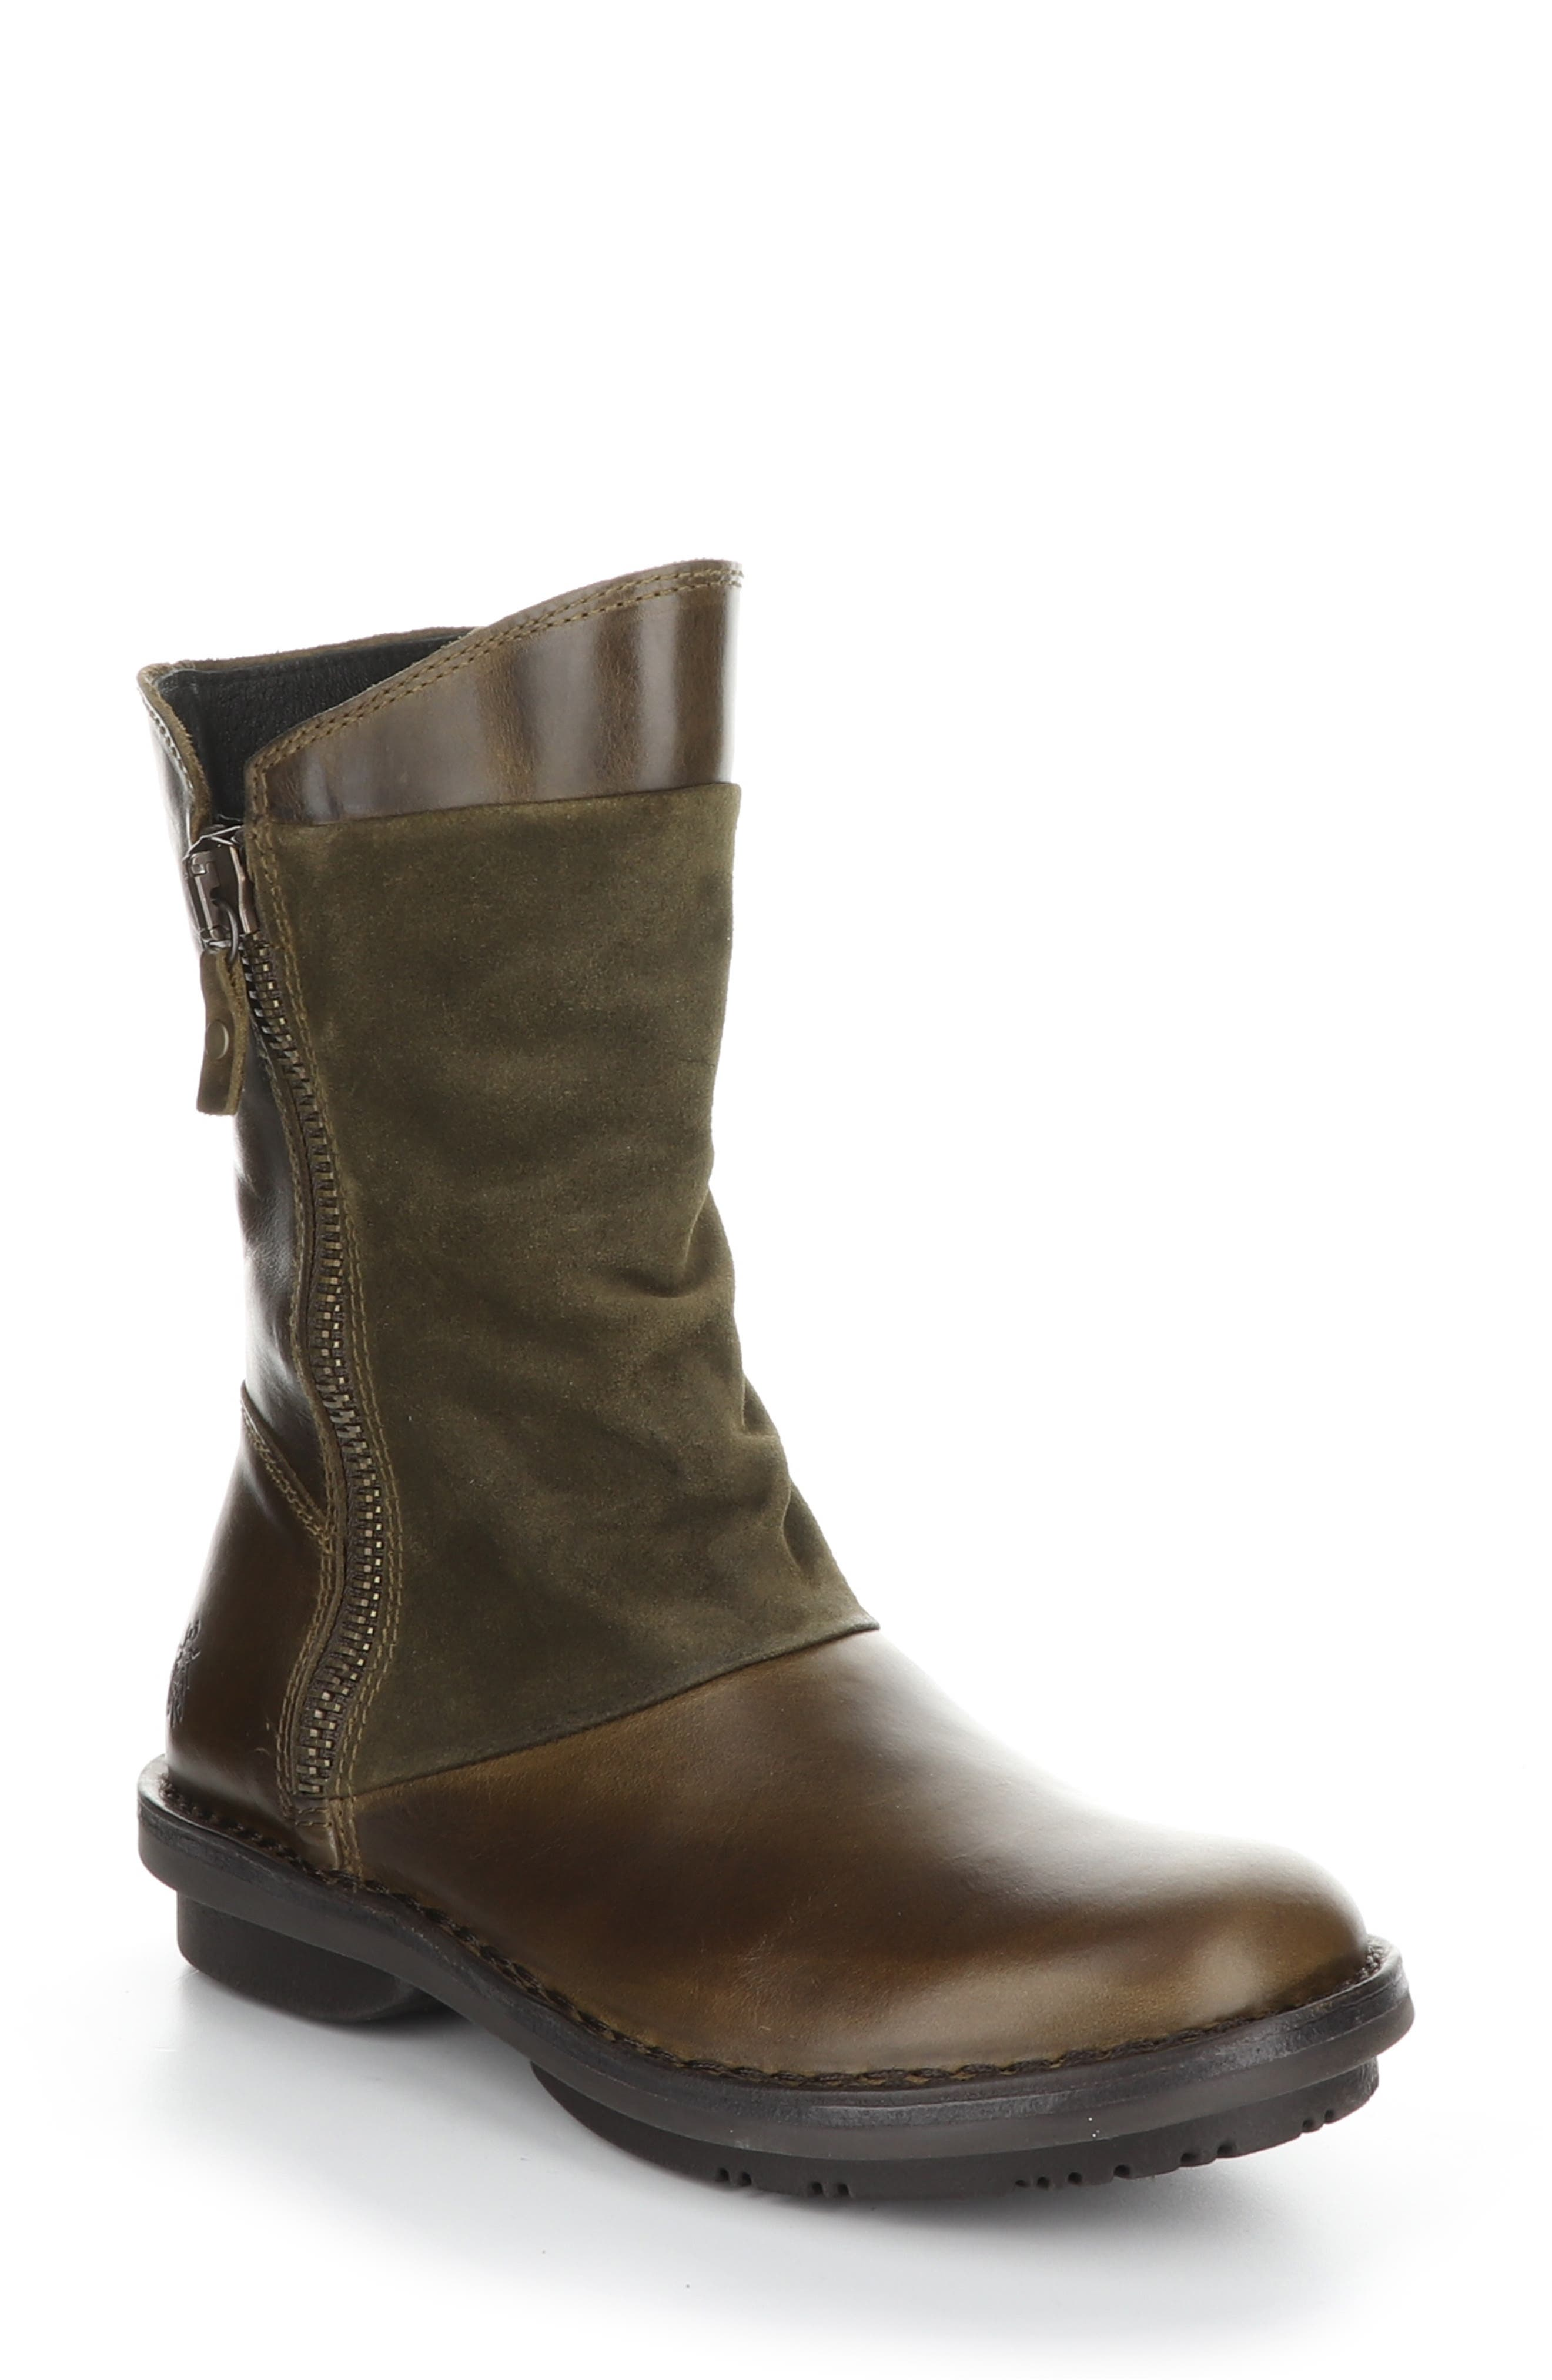 Soft, breathable leather, dual-zipper detailing, stitch-out construction and a cushioned insole make this boot a standout. Style Name: Fly London Flee Boot (Women). Style Number: 6094465. Available in stores.